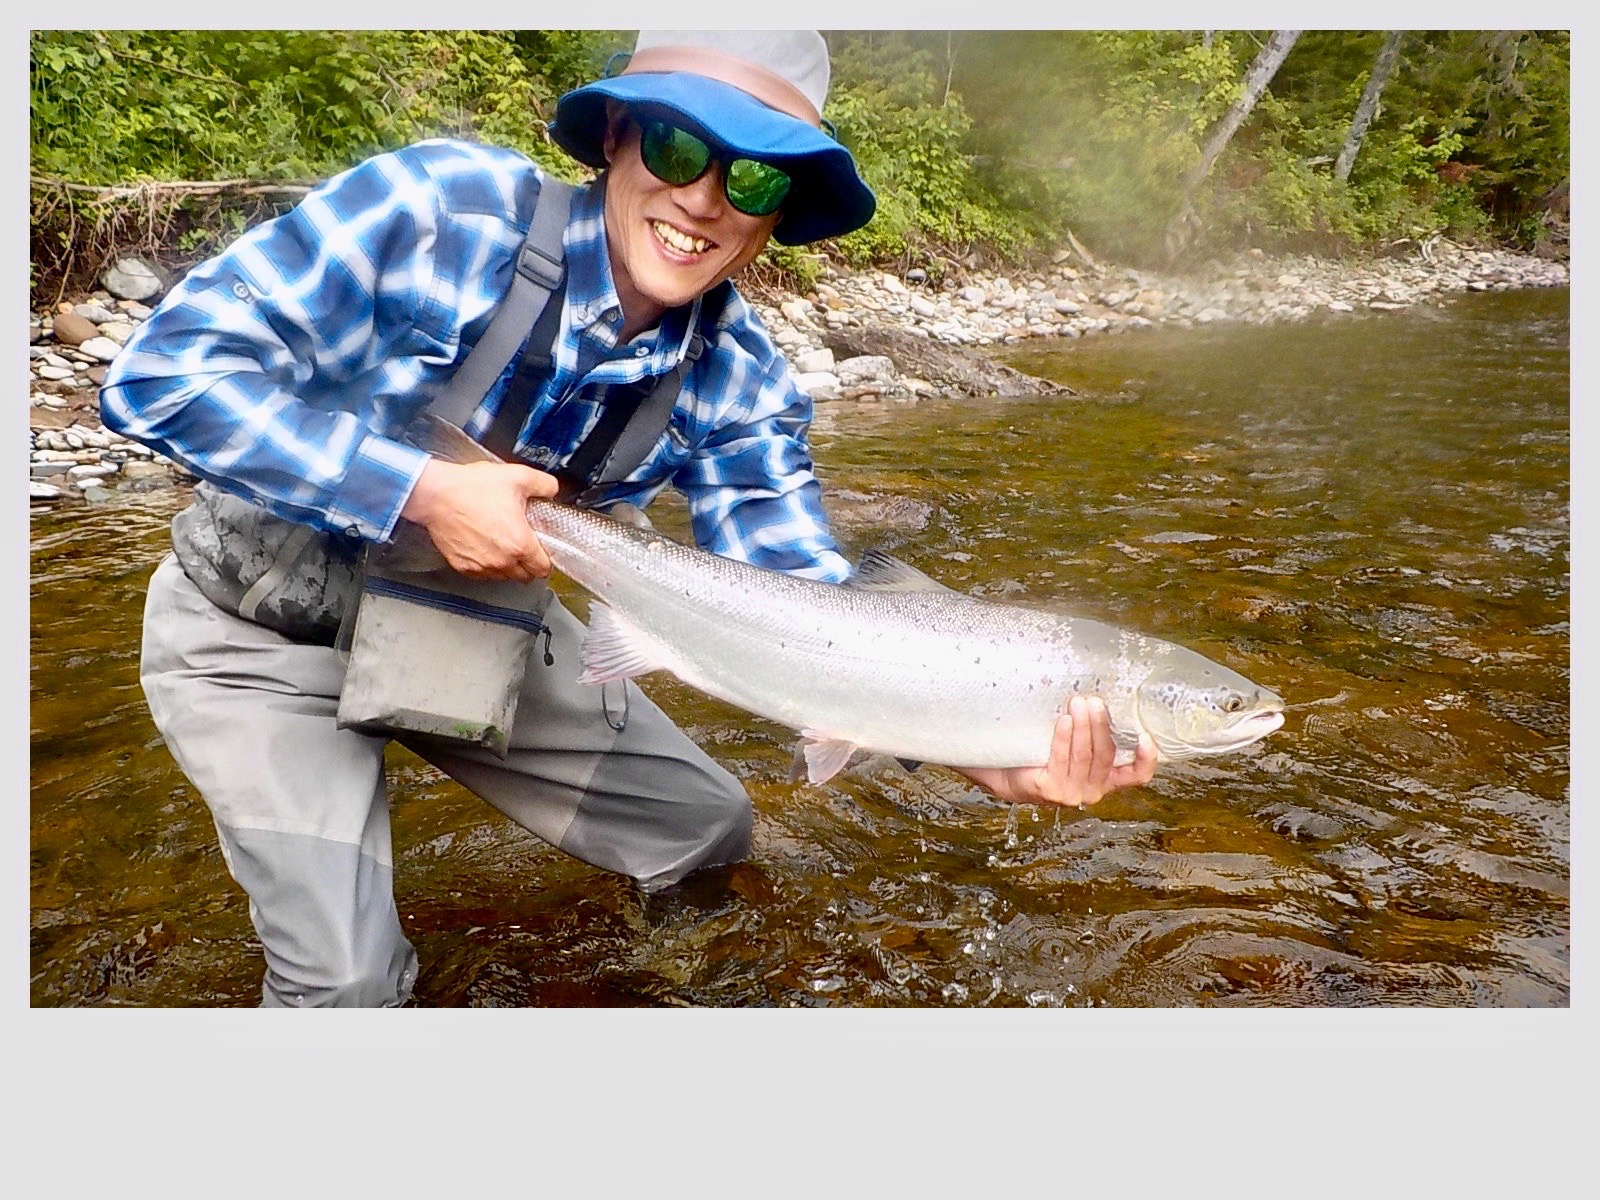 Heonku Lee landed this fine salmon on his first day out, congratulations Heonku well done.